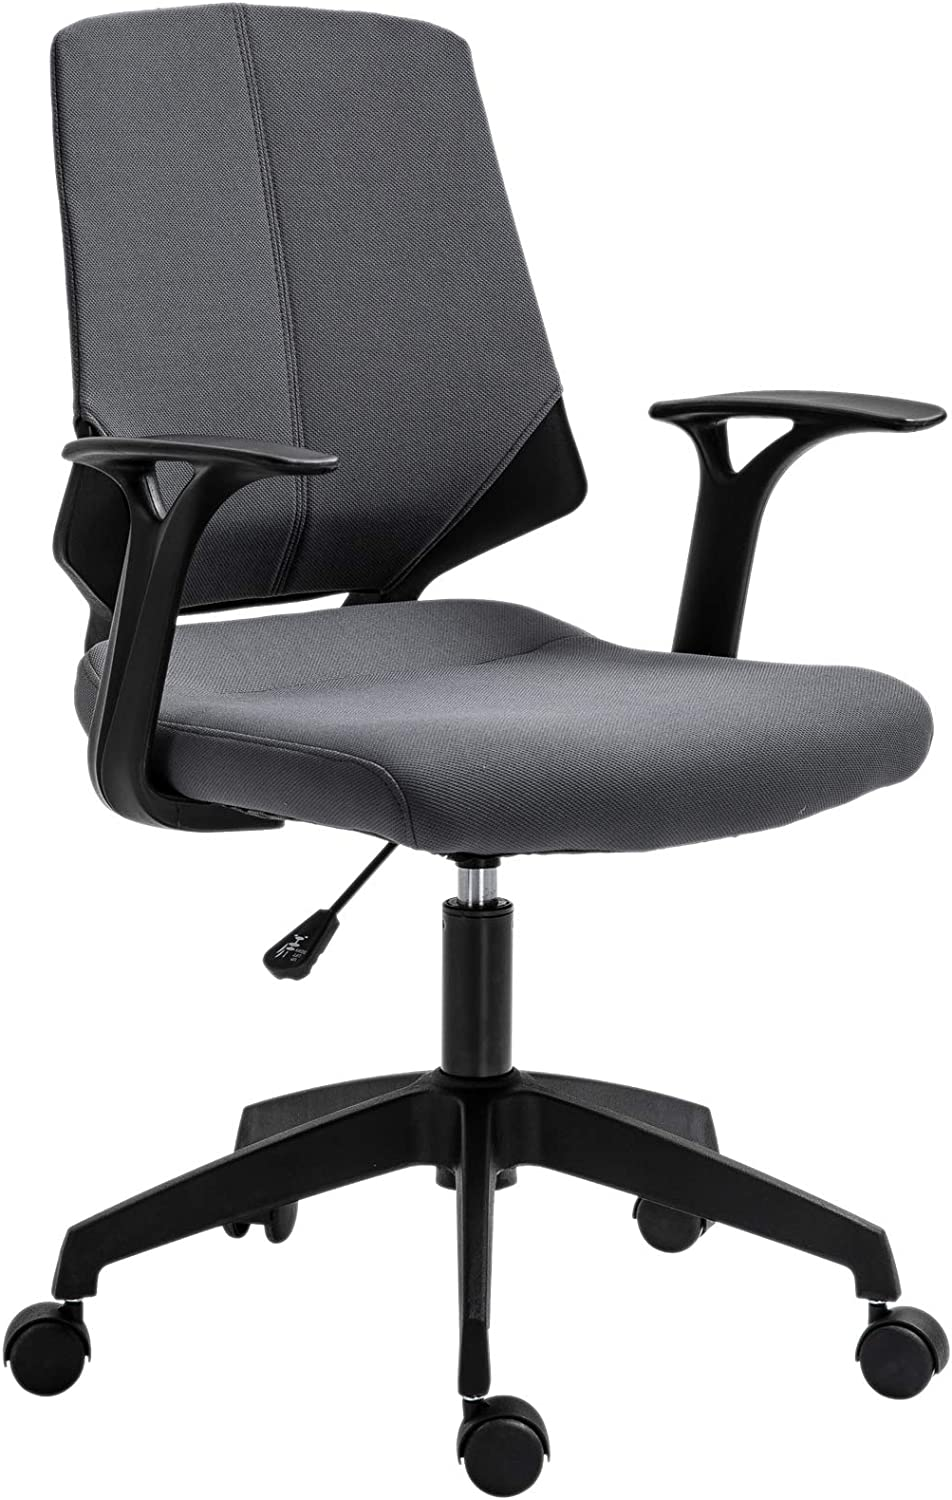 Vinsetto Mid-Back Task Chair Ergonomic Home Office Chair Full Padded Height Adjustable with Arm-Rest